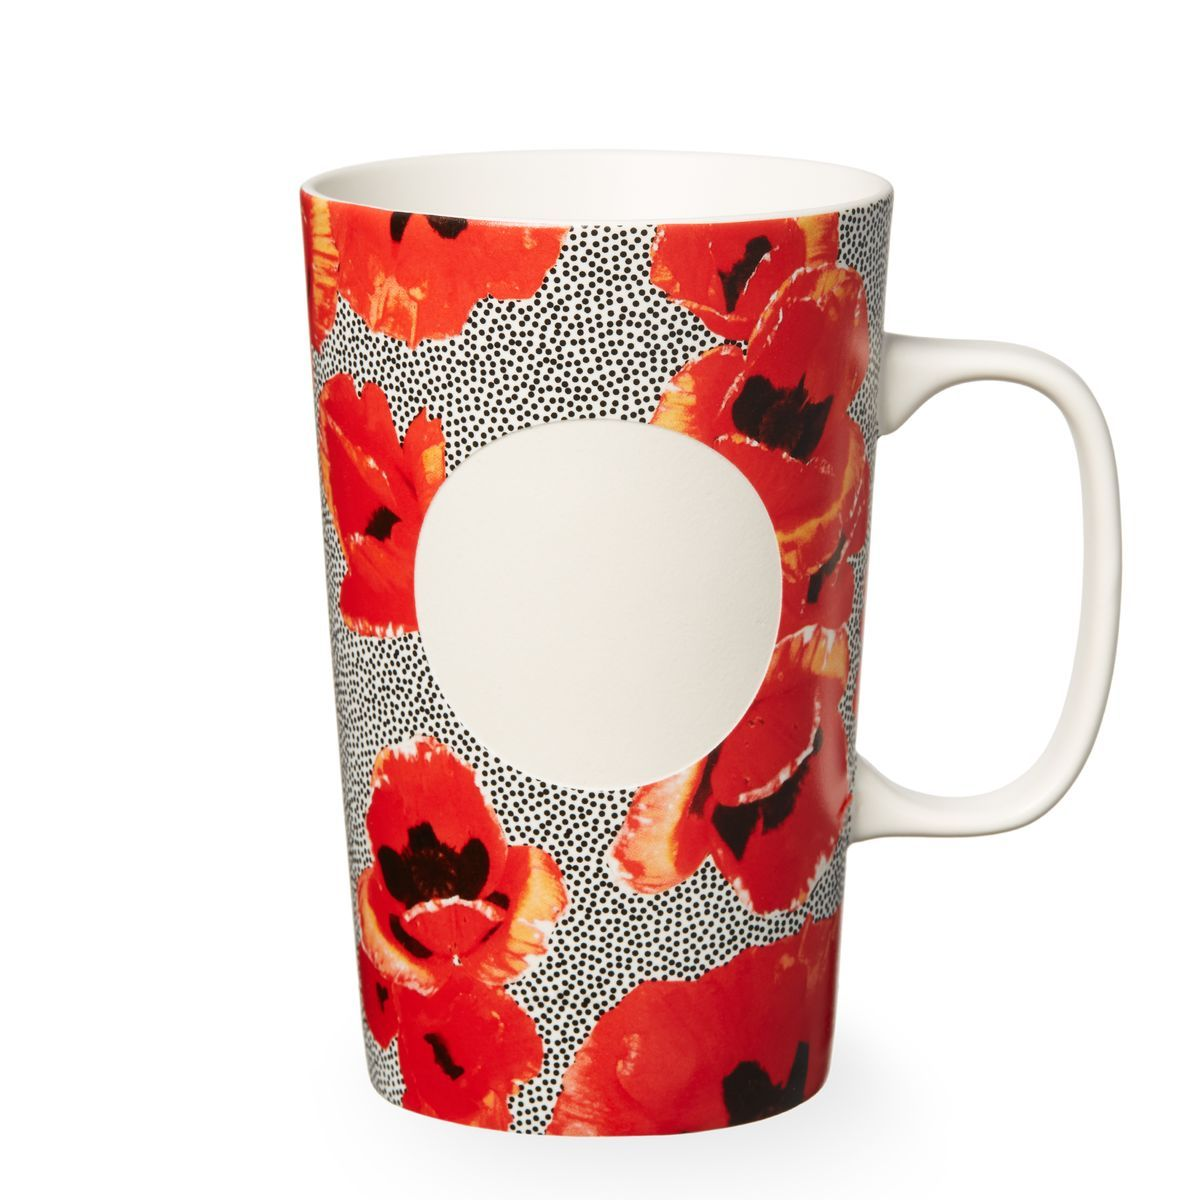 A ceramic coffee mug adorned with poppies and dotted with seeds ...